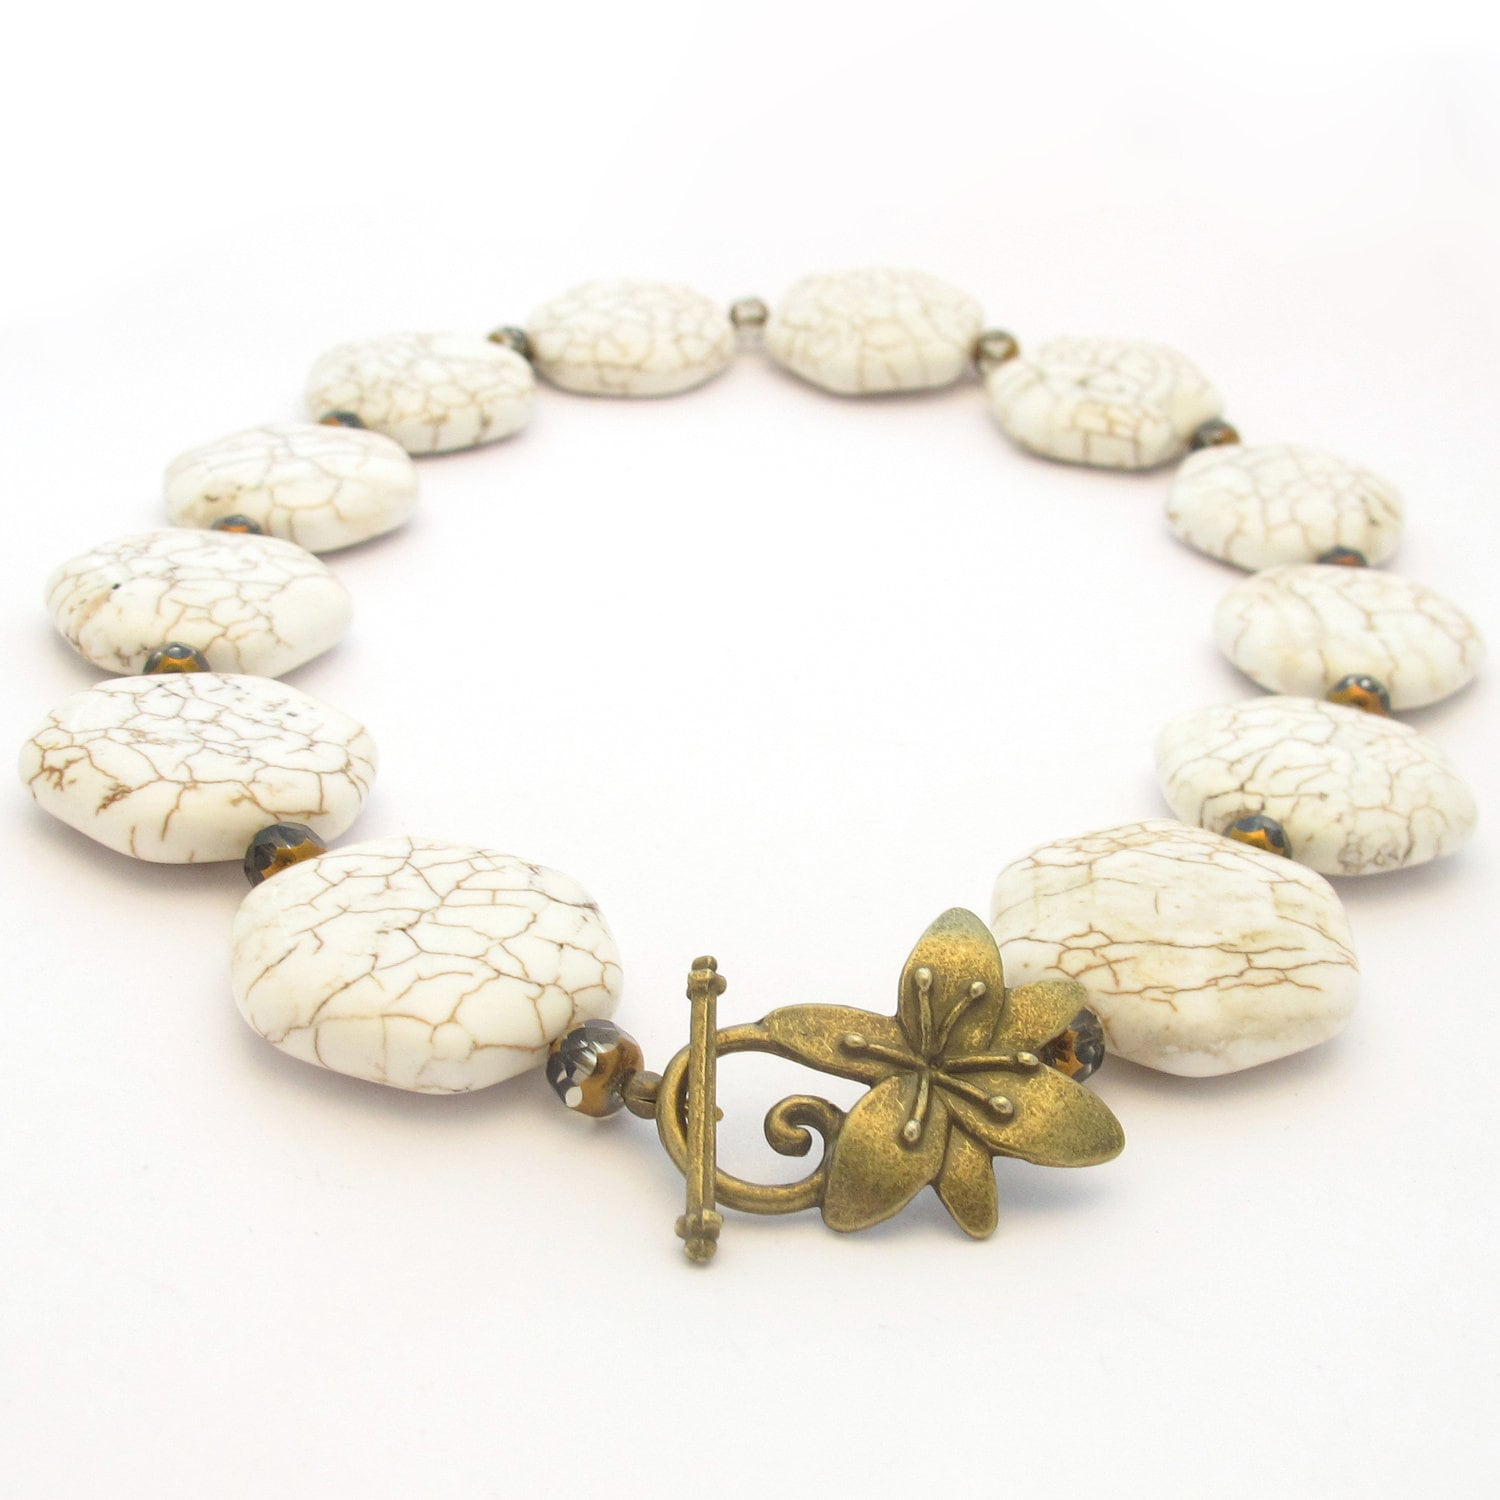 White Stone Necklace, Magnesite Beads, Flower Toggle - MoonlightShimmer